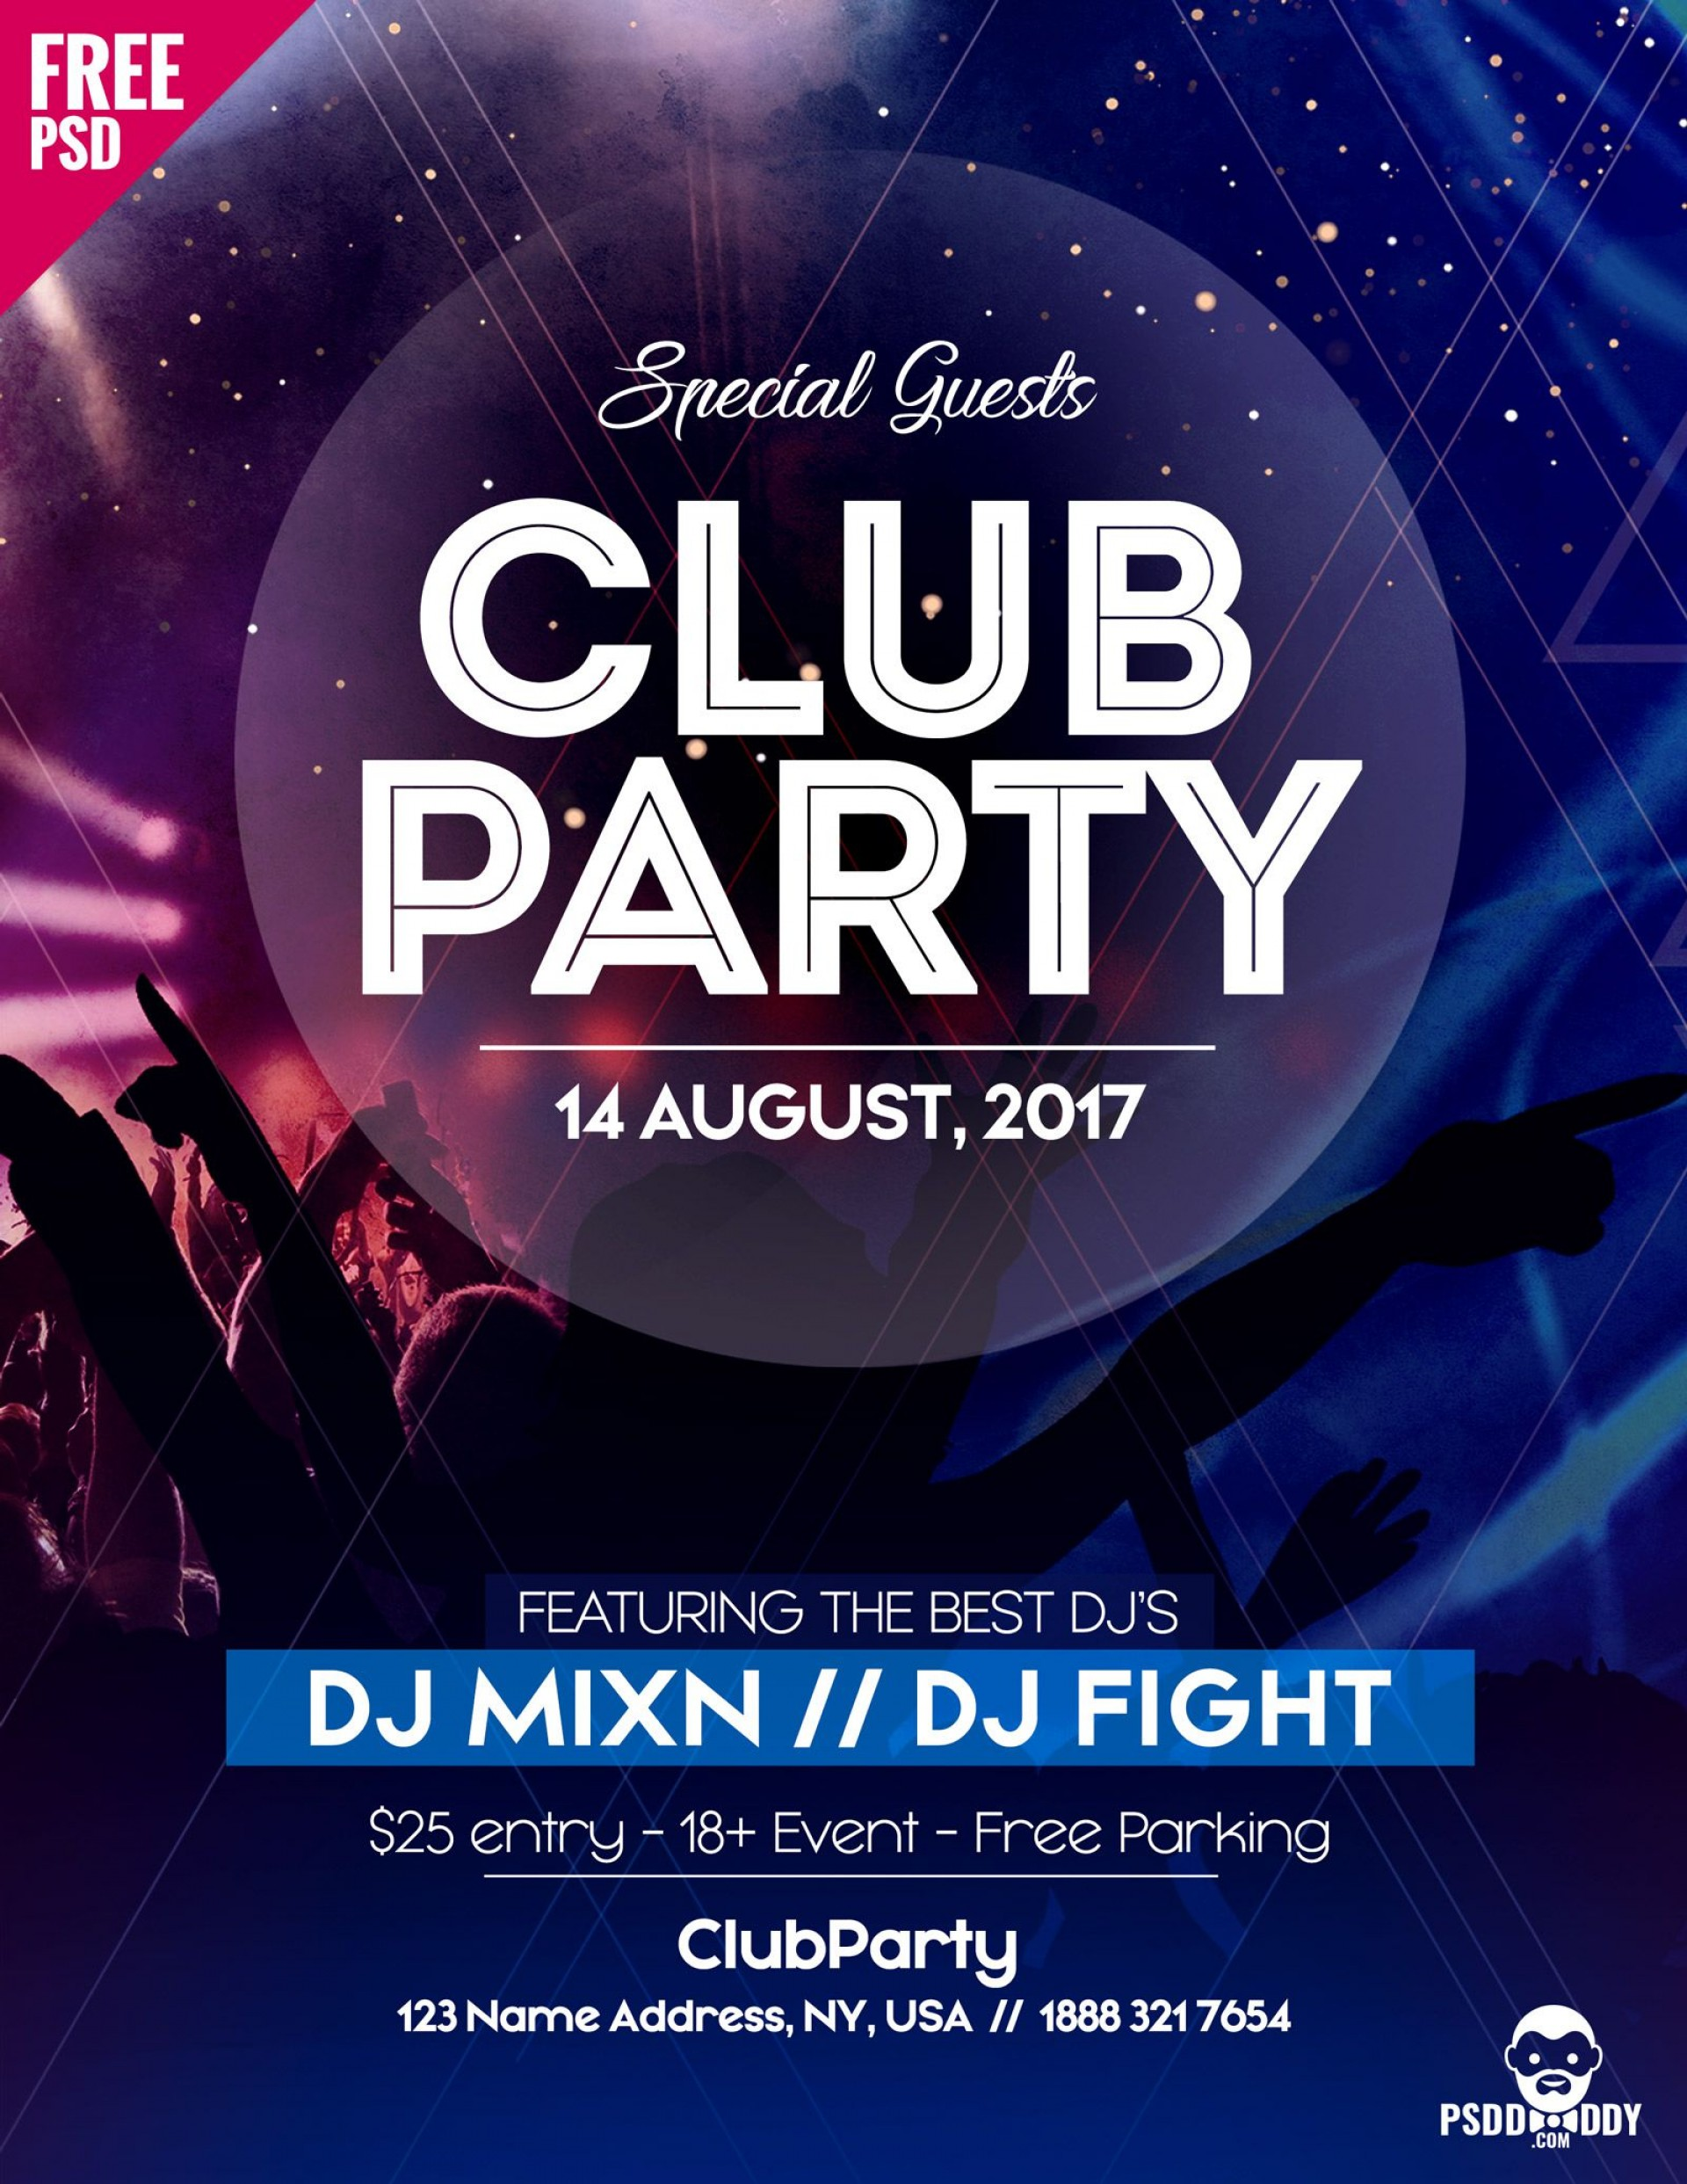 004 Rare Party Event Flyer Template Free Download Picture 1920